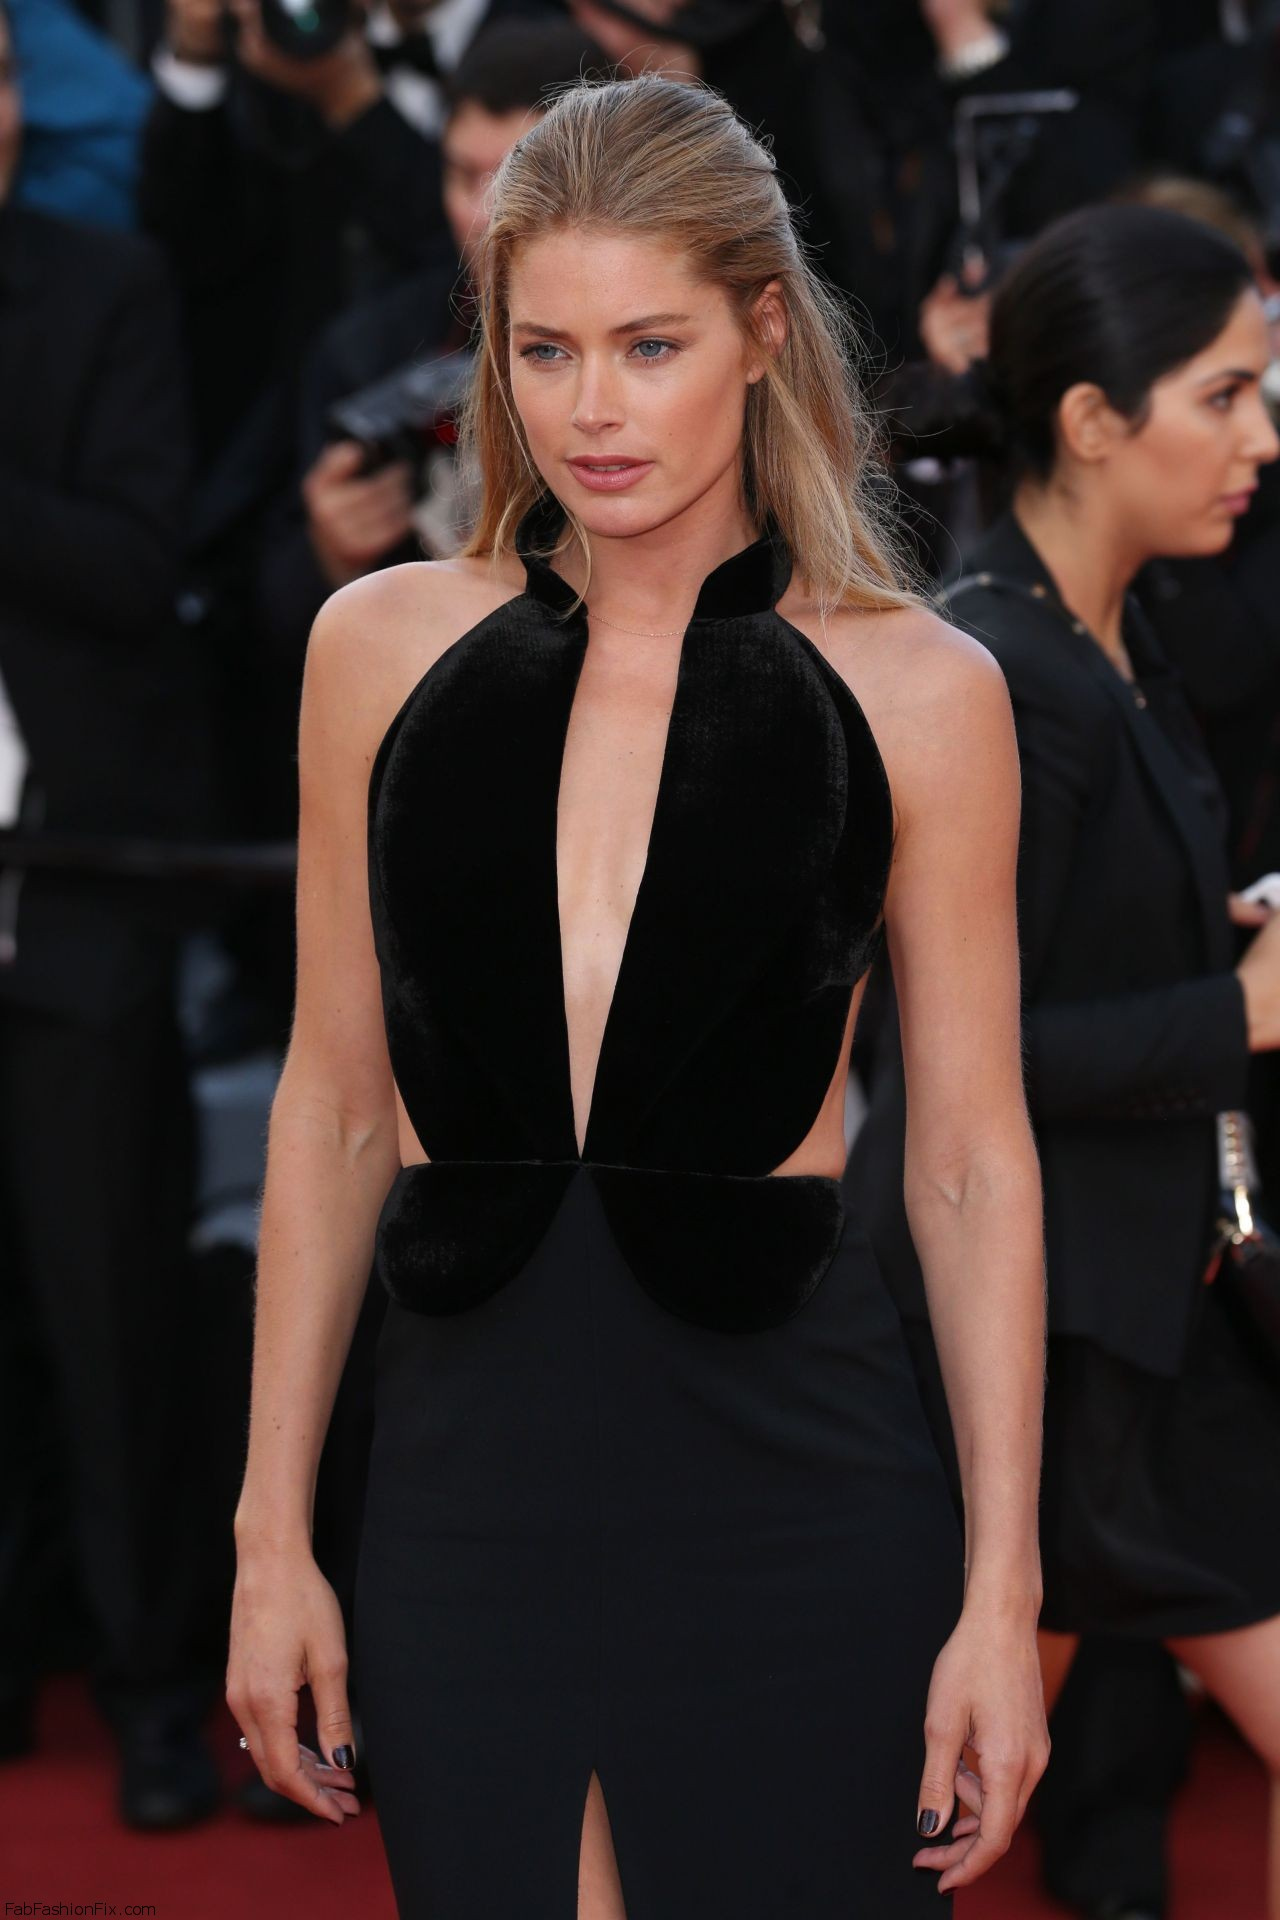 doutzen-kroes-cafe-society-premiere-and-the-opening-night-gala-2016-cannes-film-festival-2